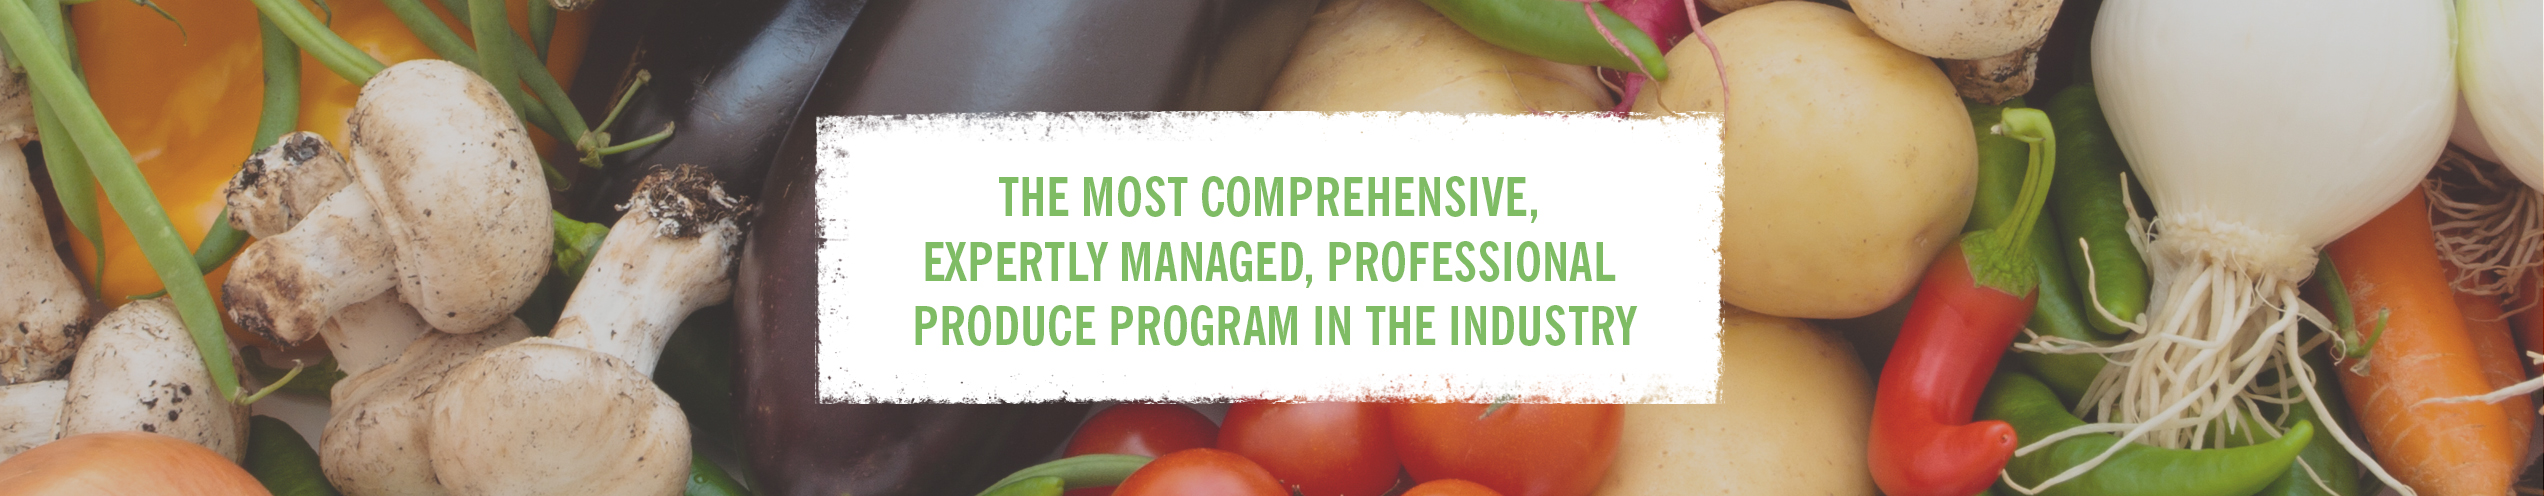 Best Produce Management Company